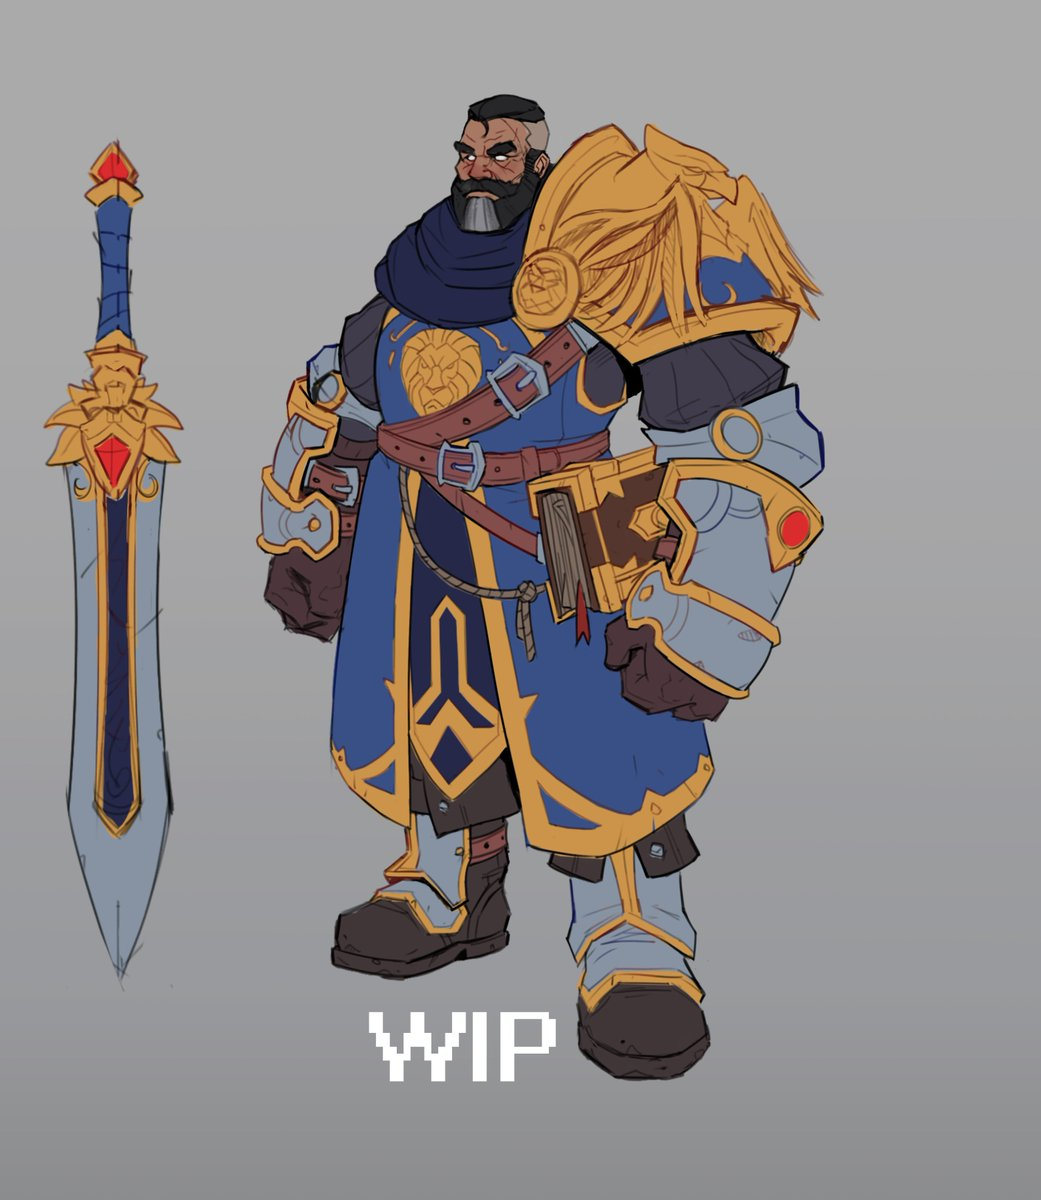 Wanted to try something with a fan concept art - Halford Wyrmbane, the leader of the 7th Legion (wip #1)#warcraft #fanconceptart<br>http://pic.twitter.com/LjGTQ52GGX